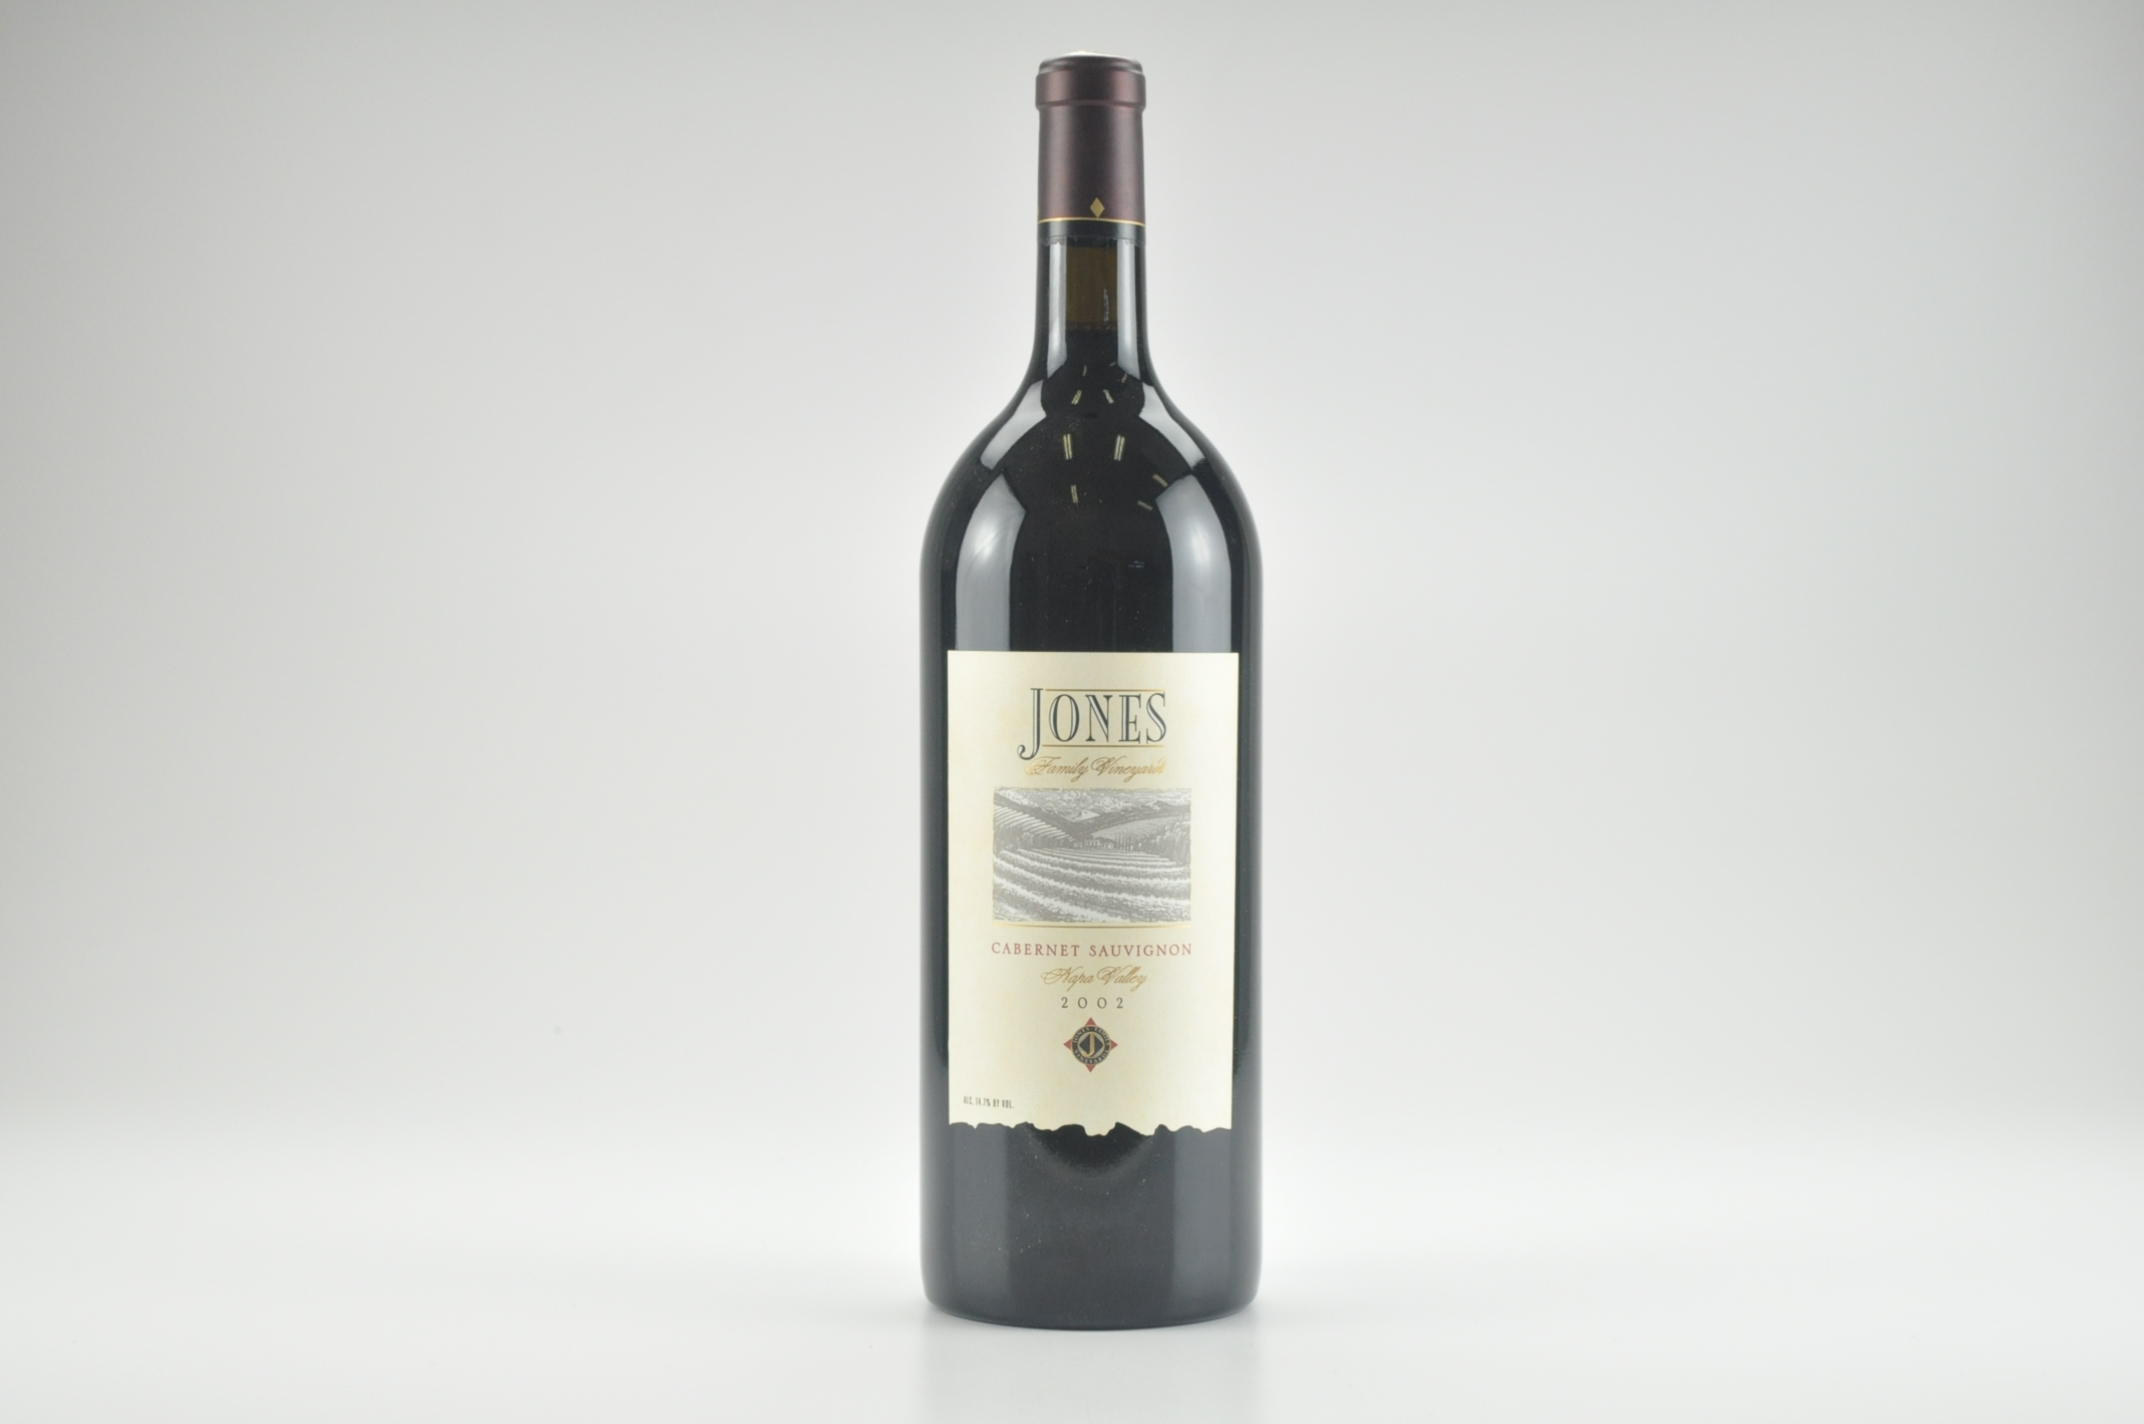 2002 Jones Cabernet Sauvignon 1.5 L, Napa Valley RP--95